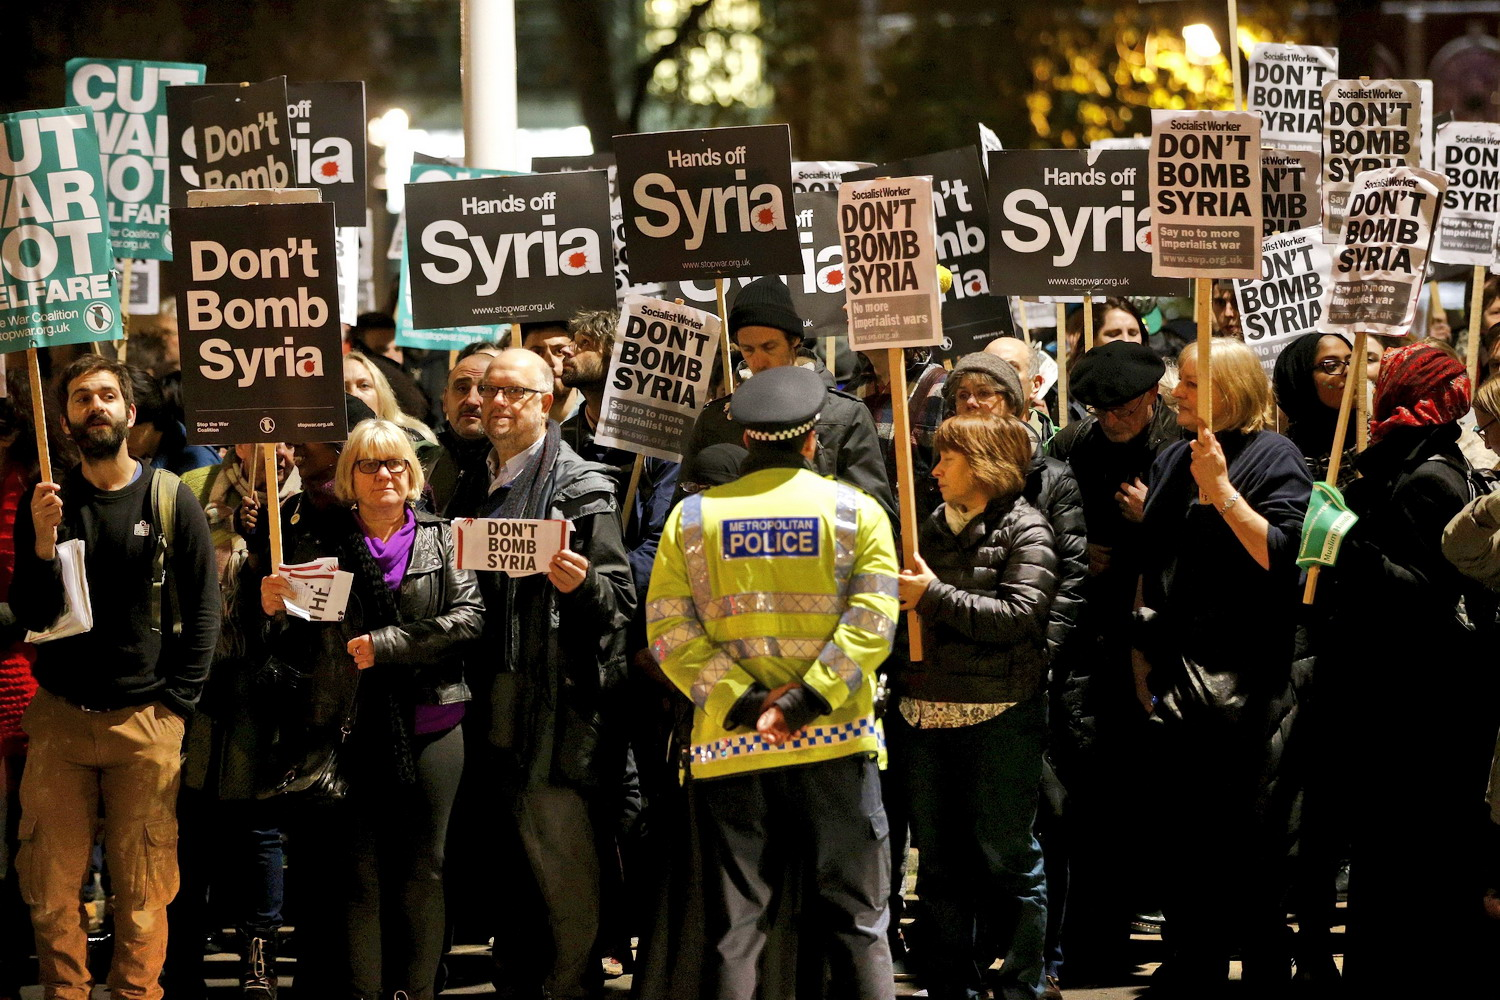 British parliament votes to bomb Islamic State in Syria